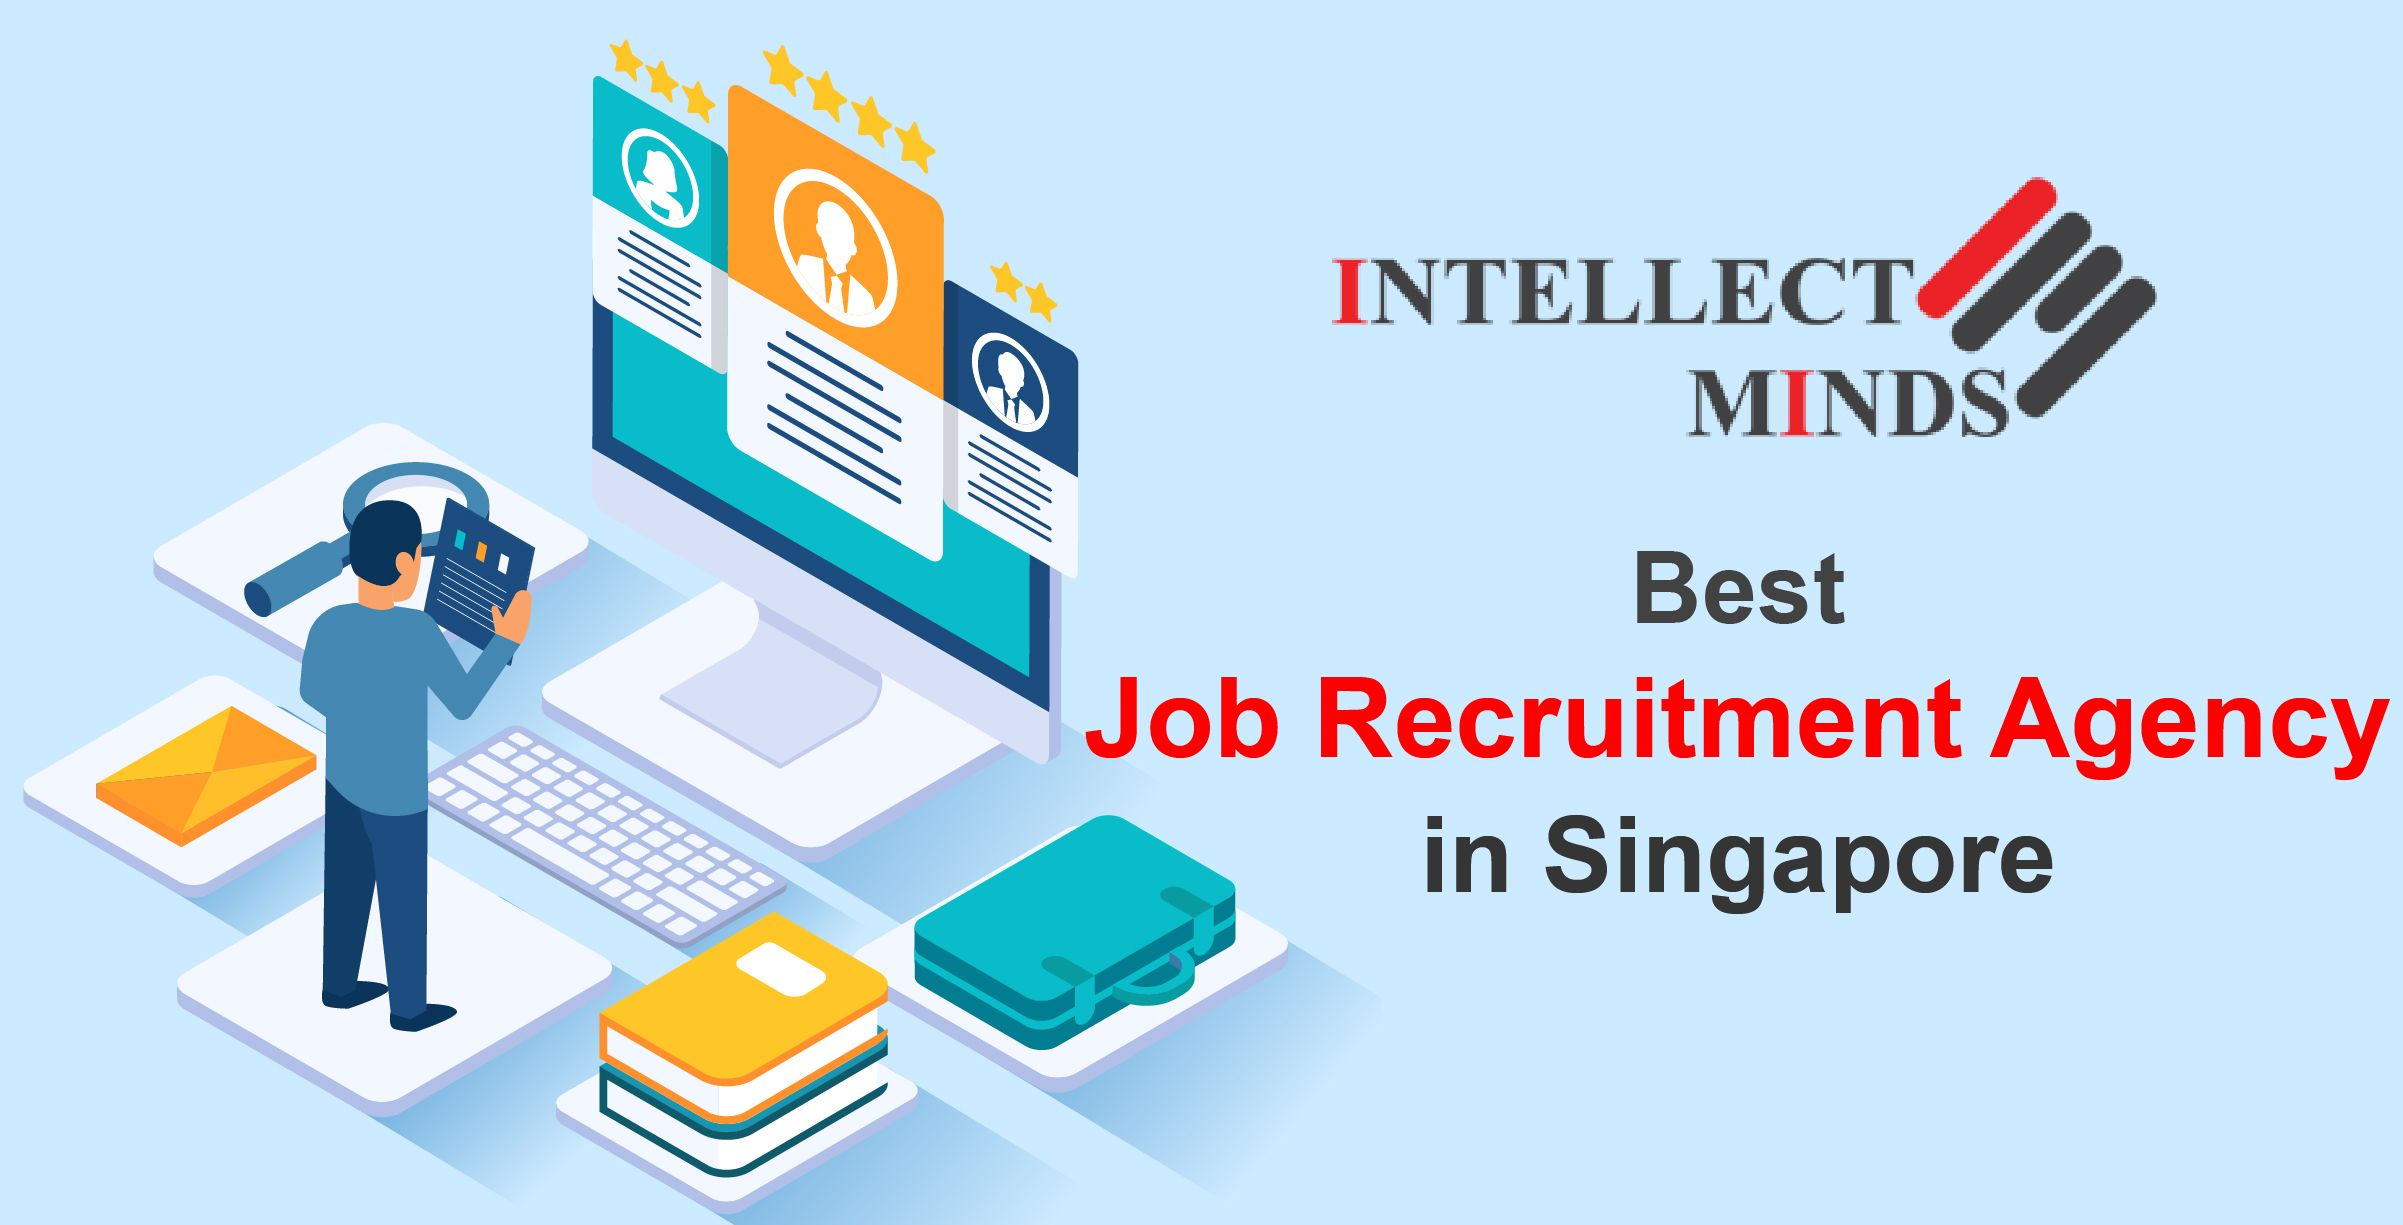 Job Placement Company With Staffing Services In Singapore Job